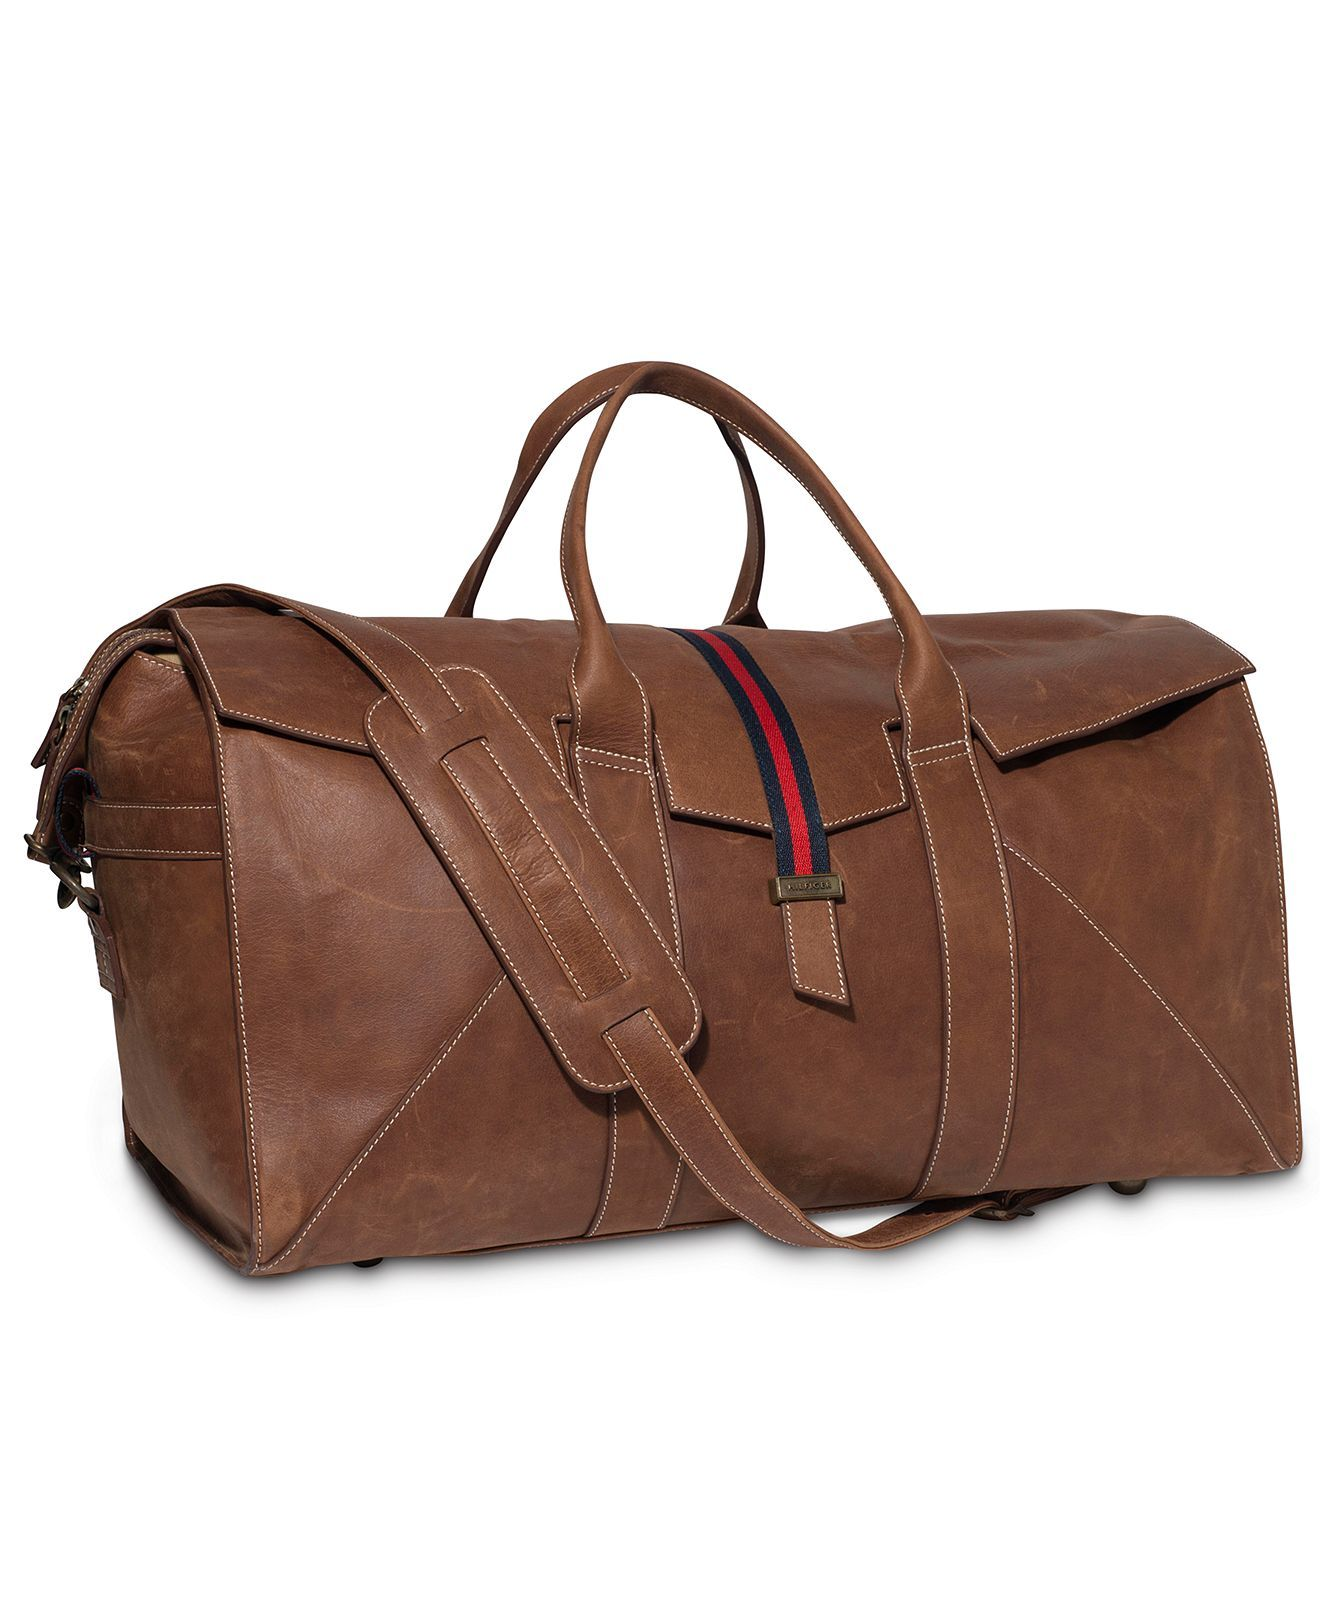 Tommy Hilfiger Bag Workhorse Leather Duffle